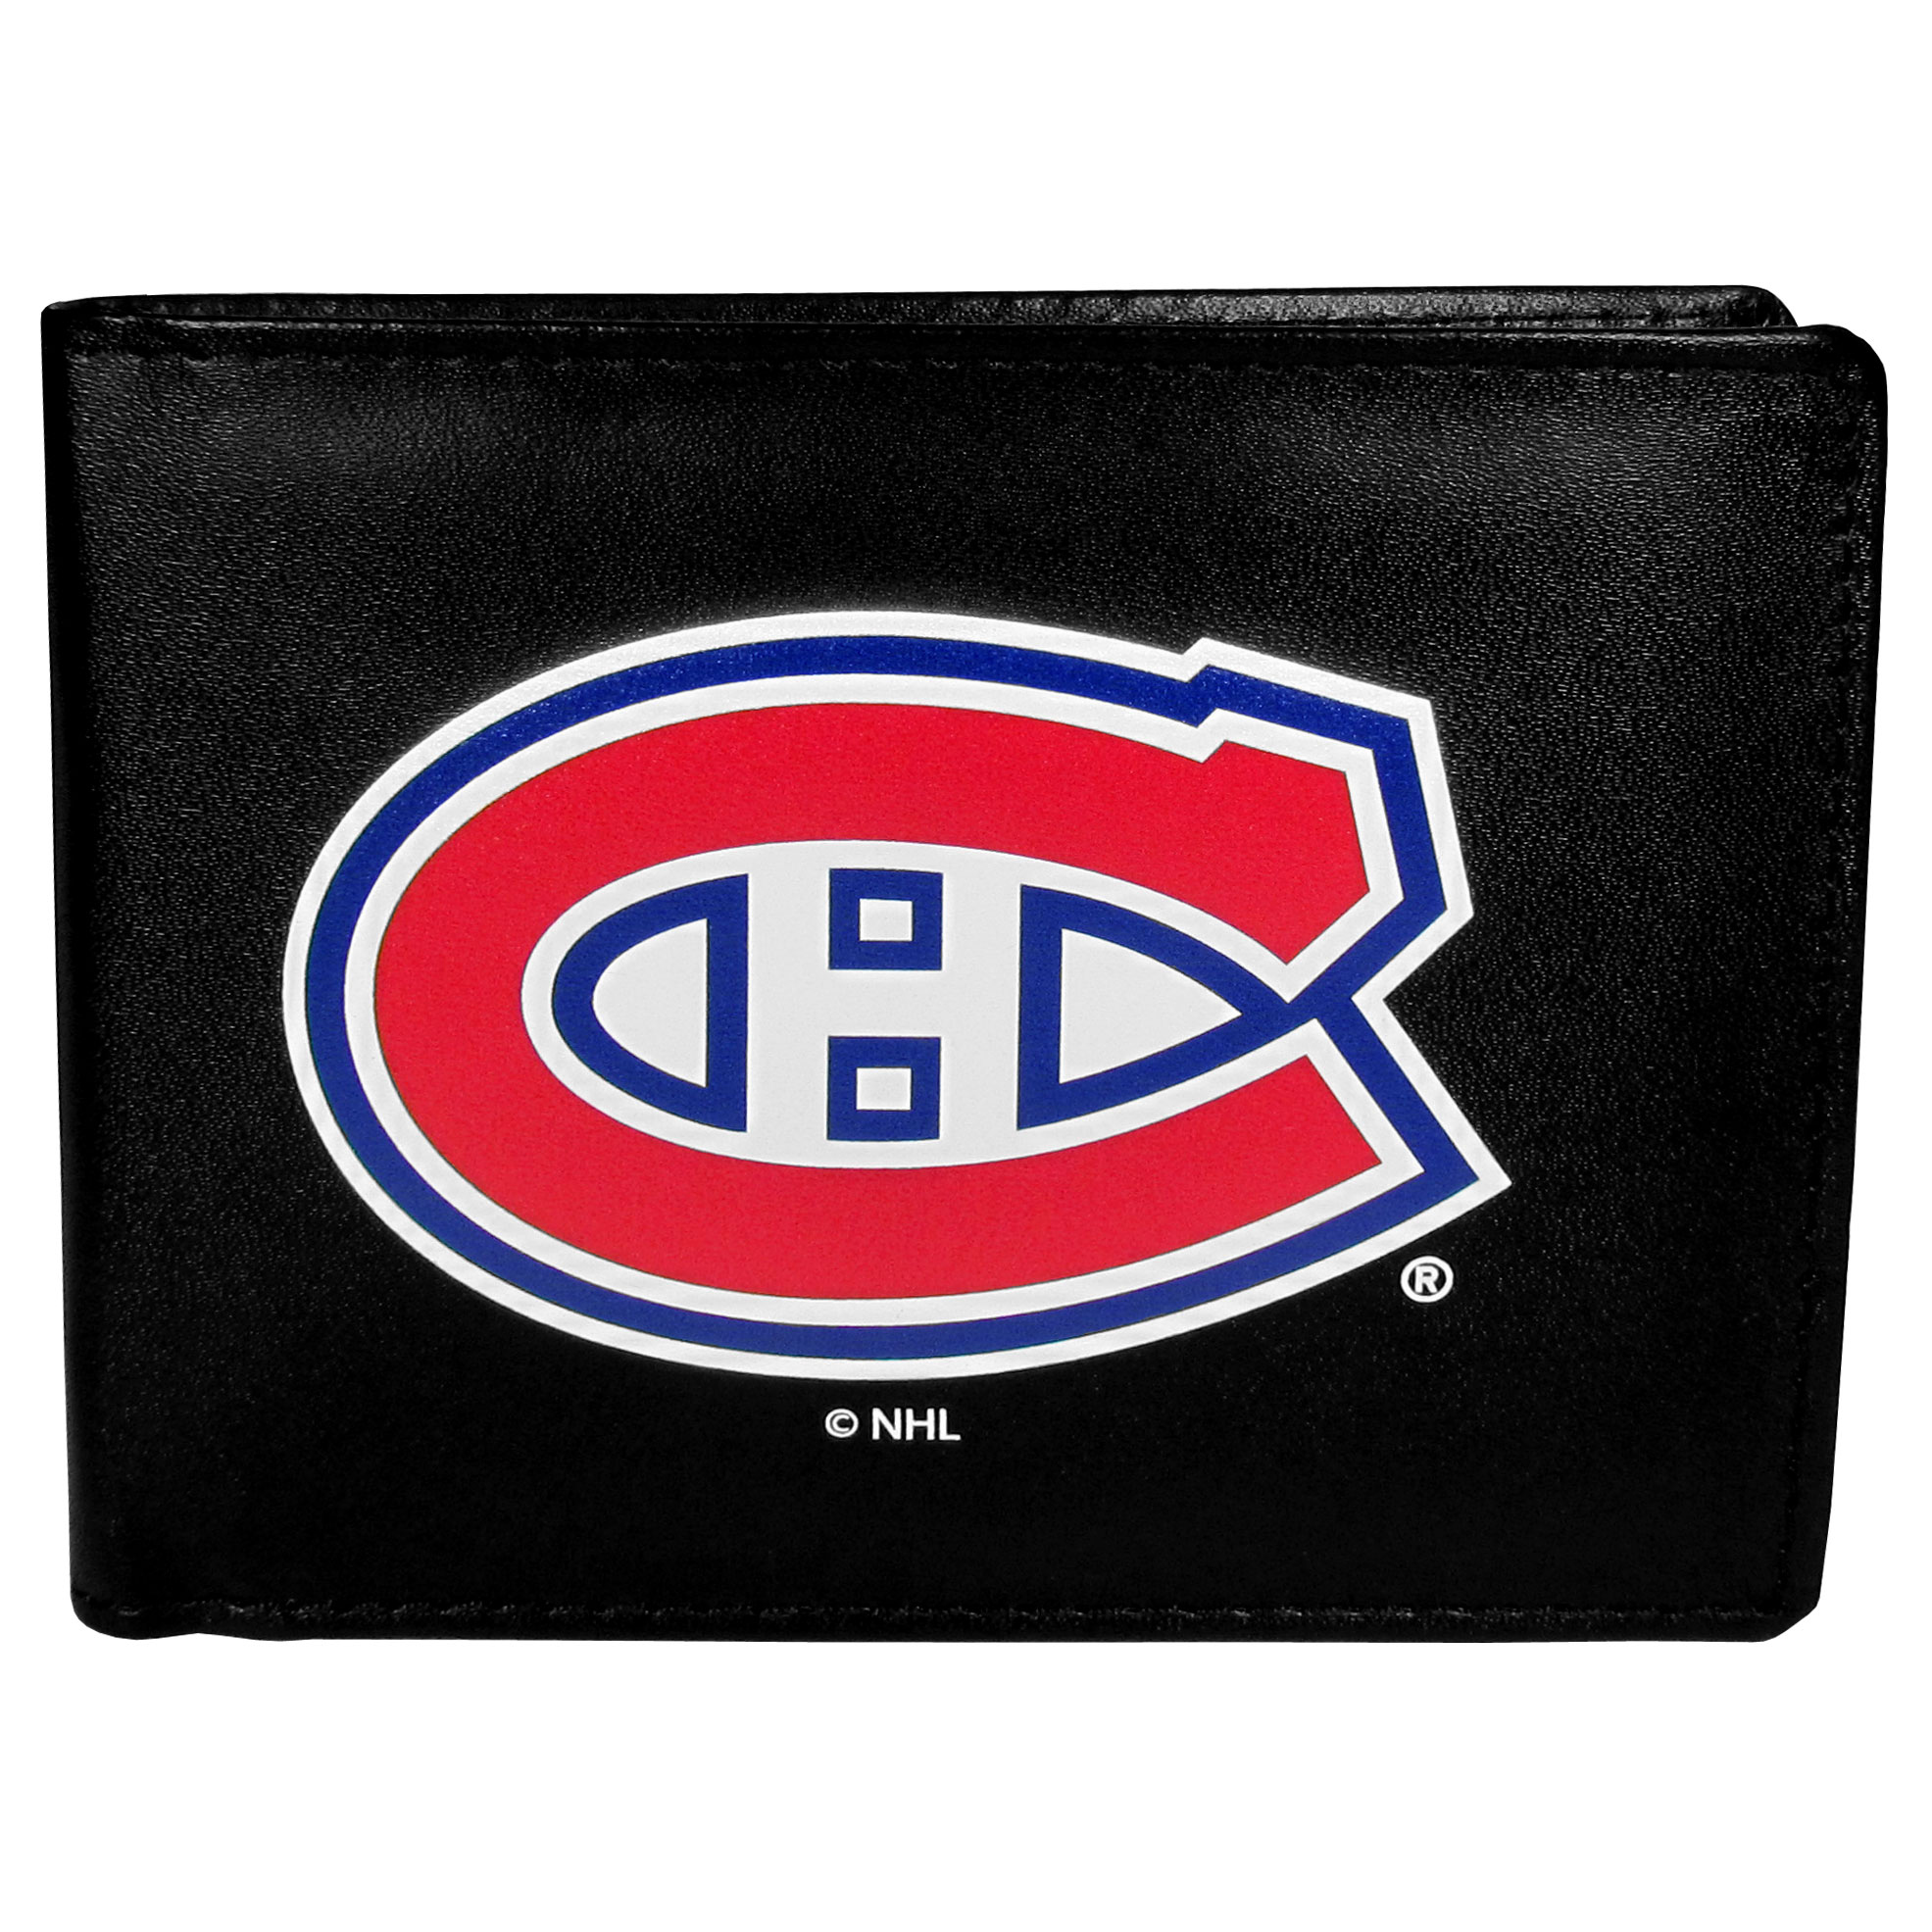 Montreal Canadiens® Leather Bi-fold Wallet, Large Logo - Our classic fine leather bi-fold wallet is meticulously crafted with genuine leather that will age beautifully so you will have a quality wallet for years to come. The wallet opens to a large, billfold pocket and numerous credit card slots and has a convenient windowed ID slot. The front of the wallet features an extra large Montreal Canadiens® printed logo.